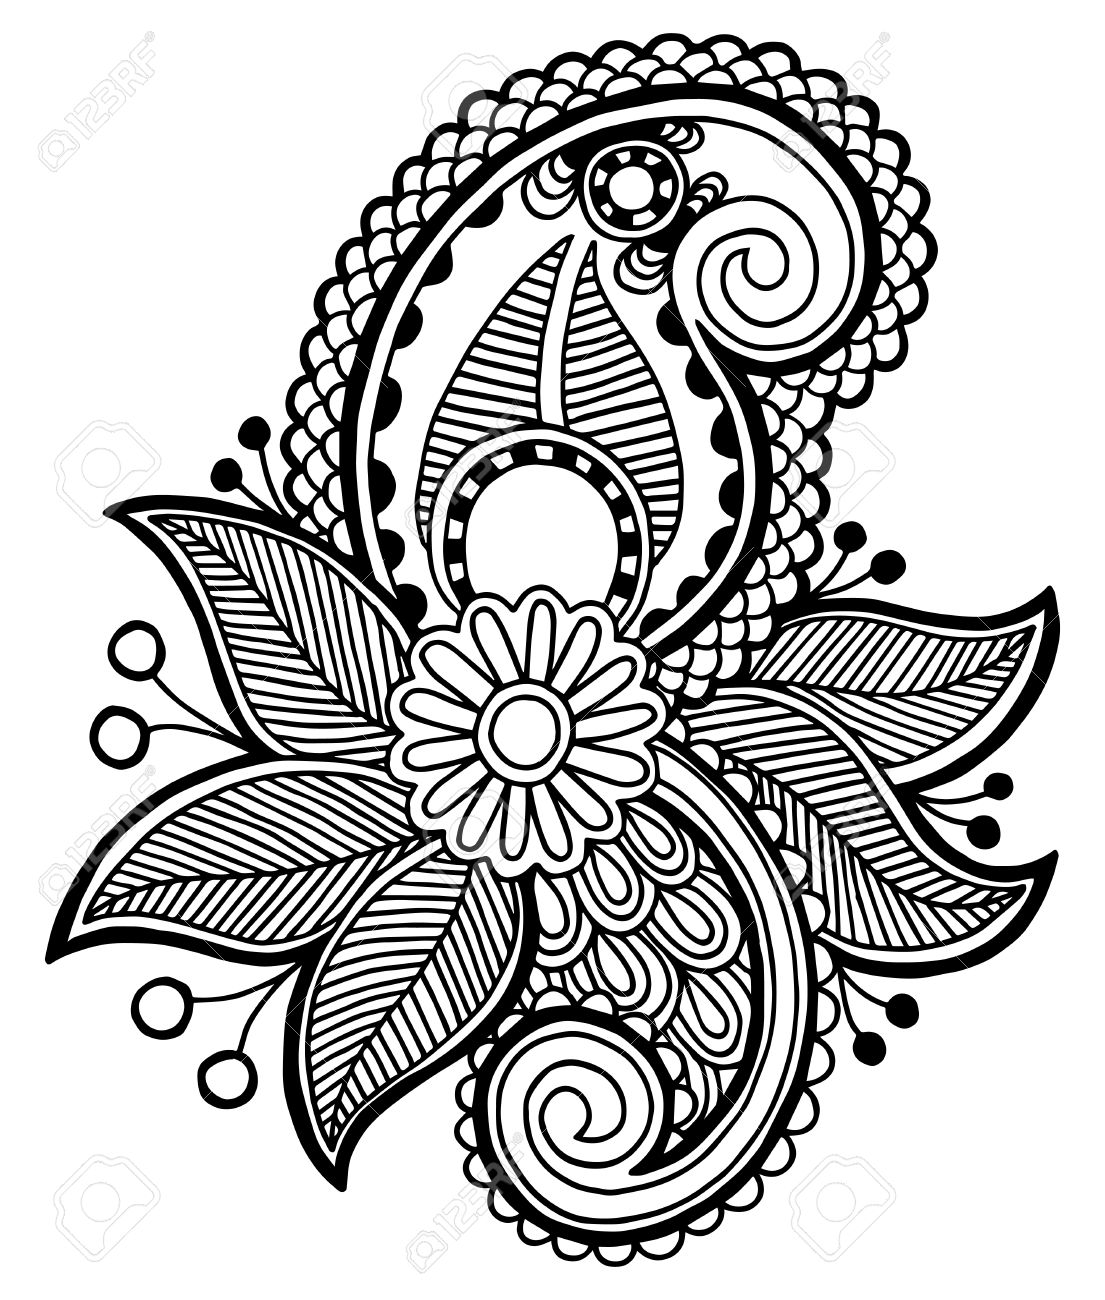 black line art ornate flower design ukrainian ethnic style rh 123rf com black and white vector art of famous people black and white vector art heart